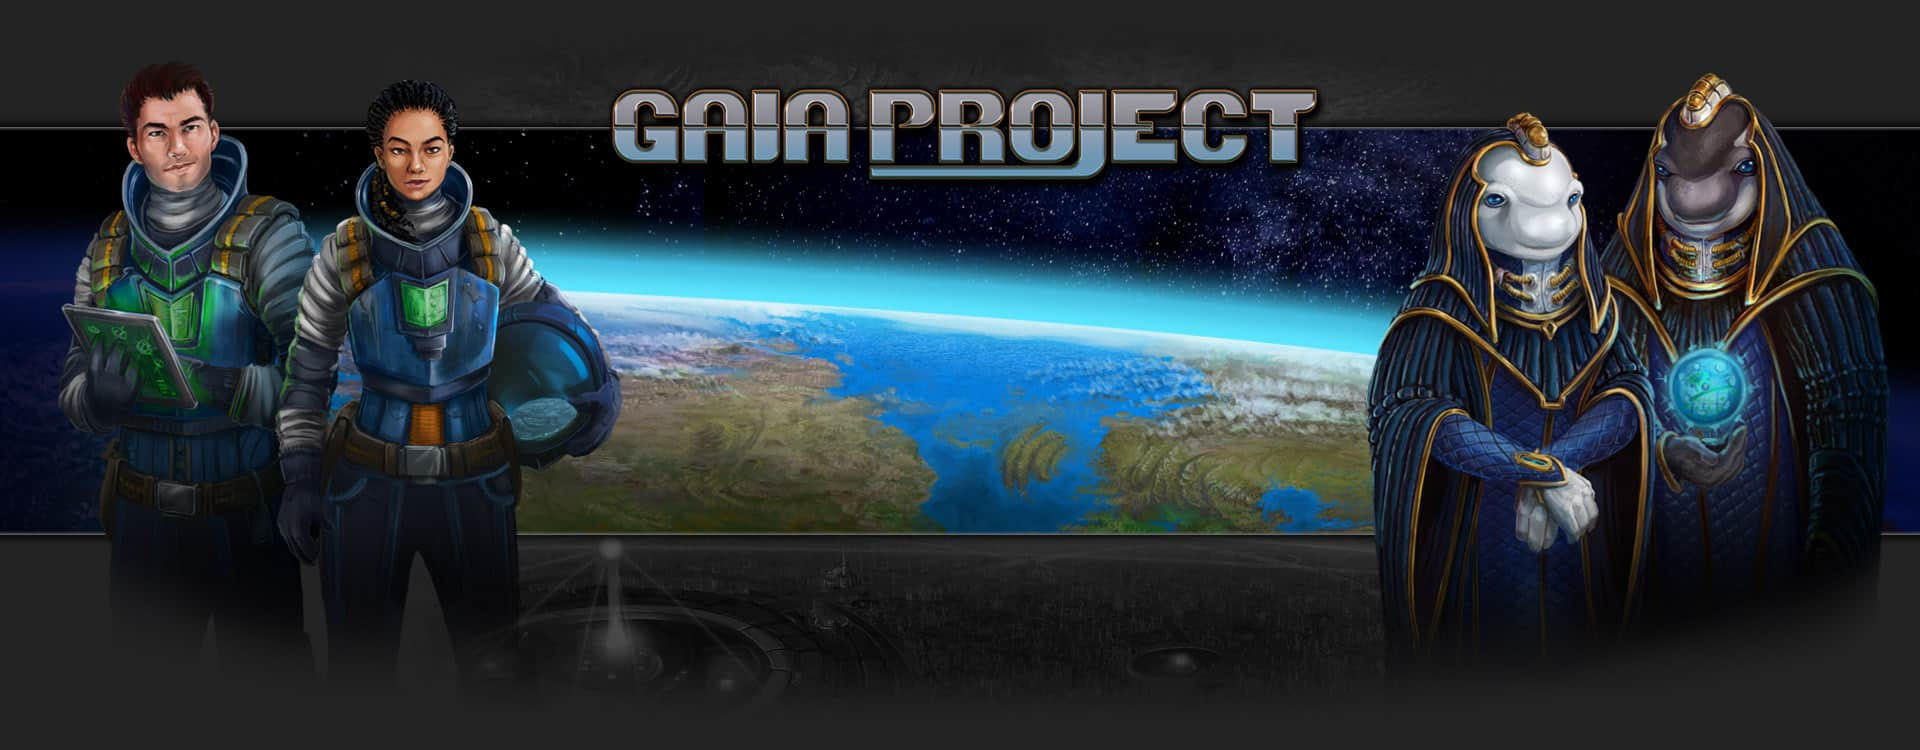 Gaia Project header image (4 player family euro game)